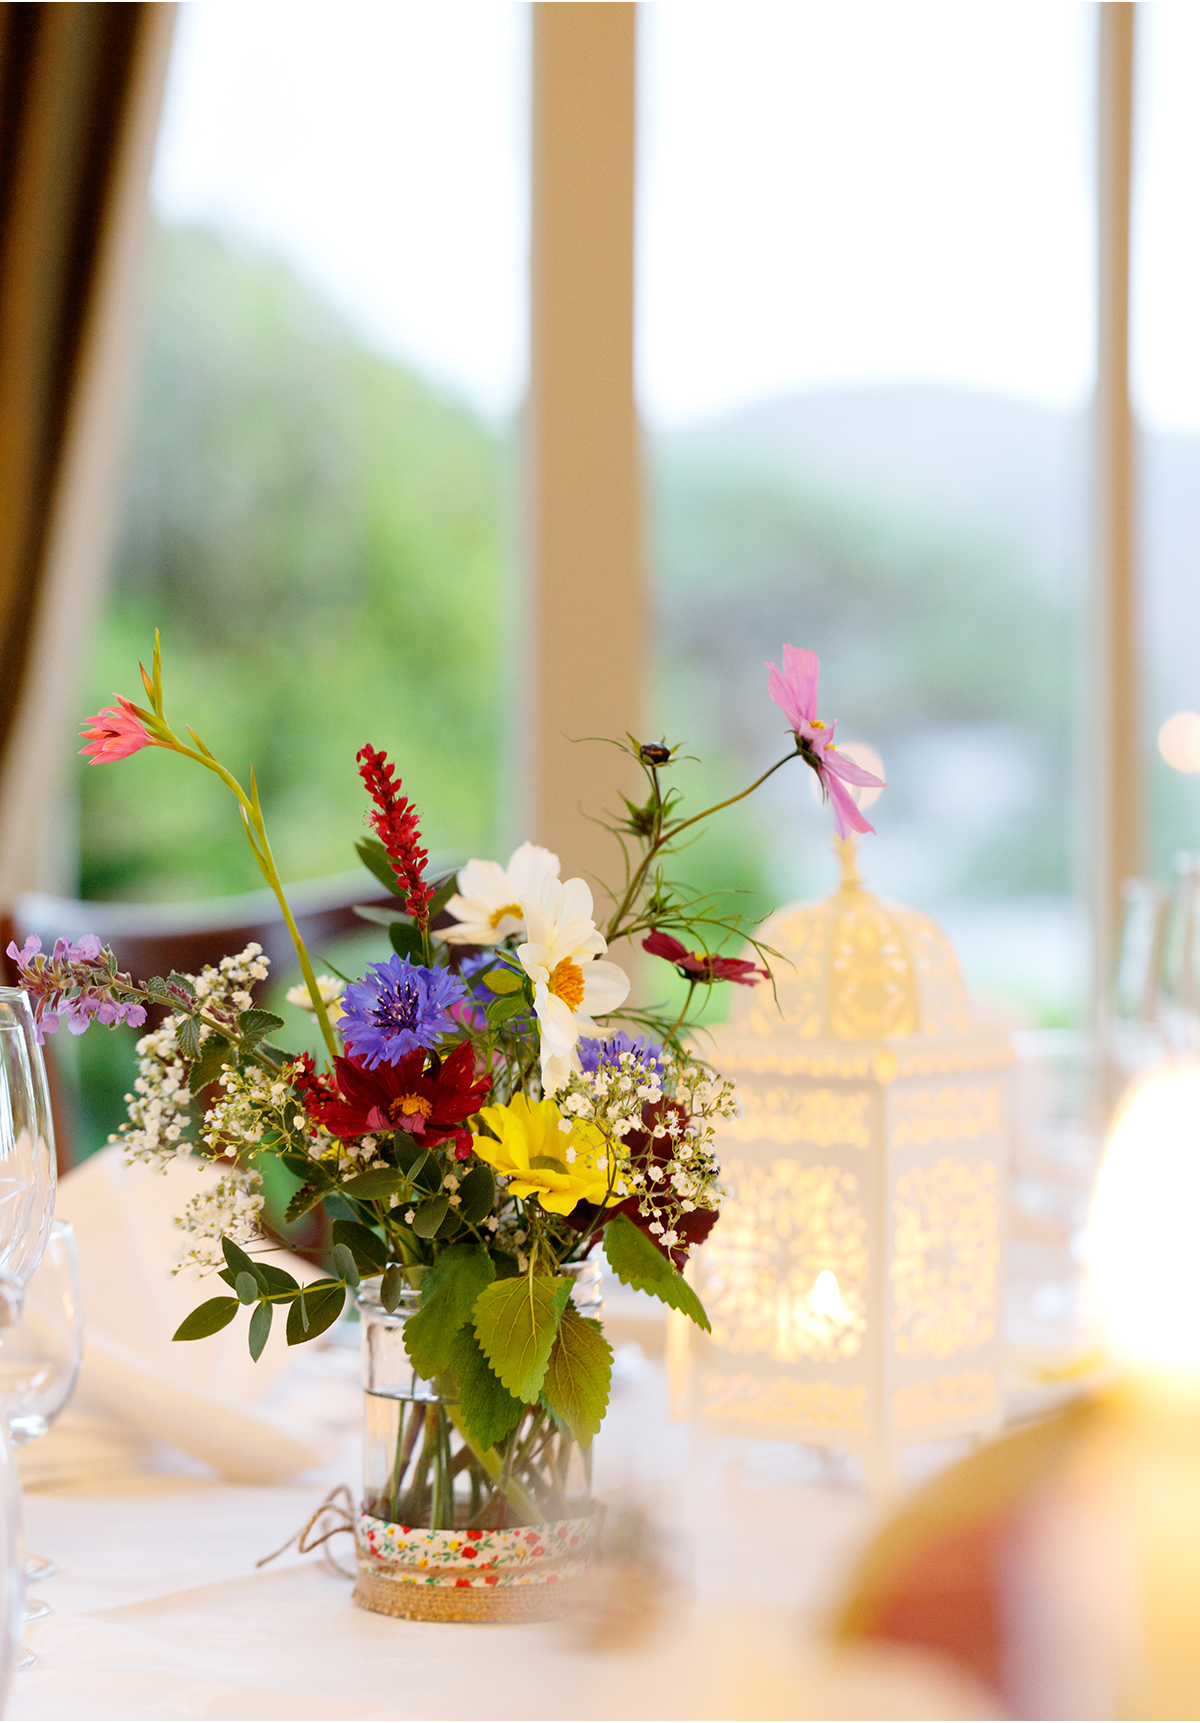 Carrig Country House wedding dining room